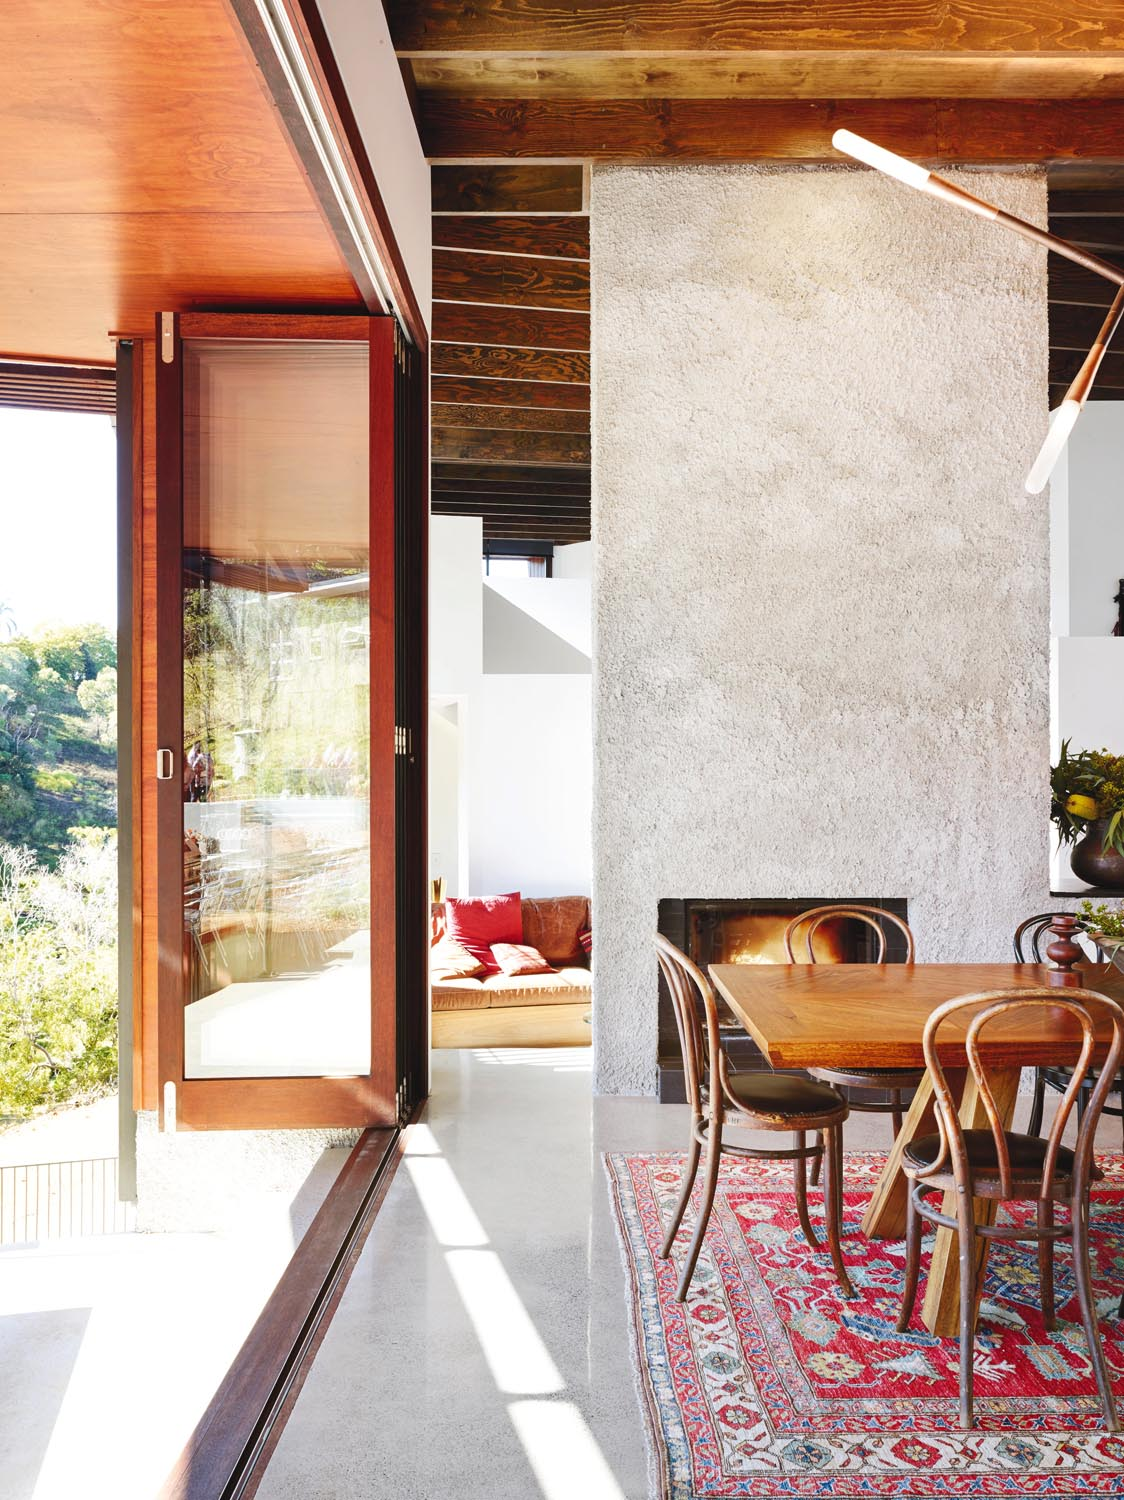 The kitchen opens up on both sides thanks to bi-fold doors